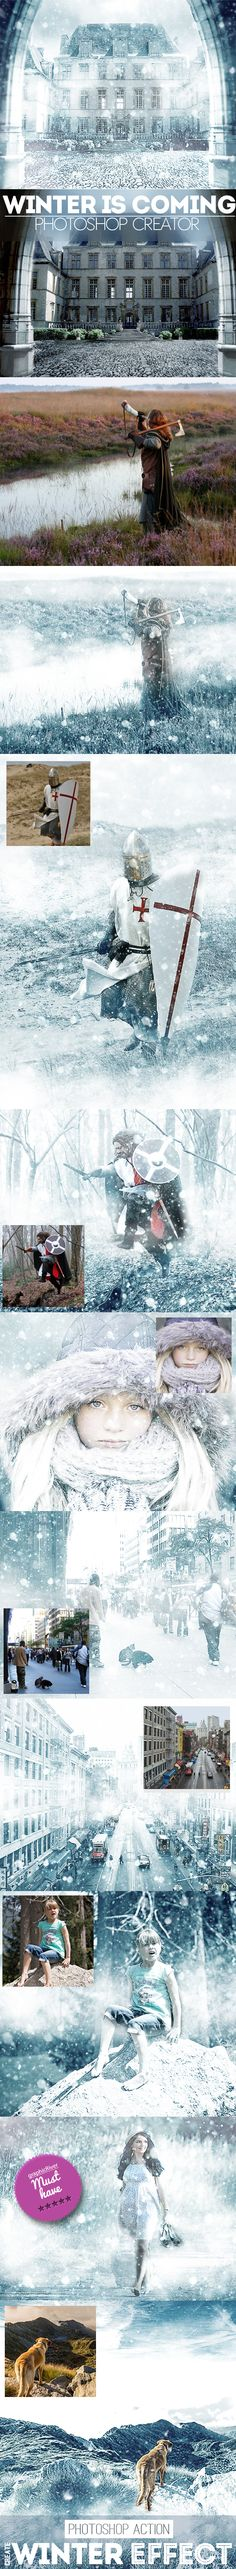 Winter is Coming Photoshop Snowing Effect Action #photoeffect Download: http://graphicriver.net/item/winter-is-coming-photoshop-snowing-effect-action/13828287?ref=ksioks